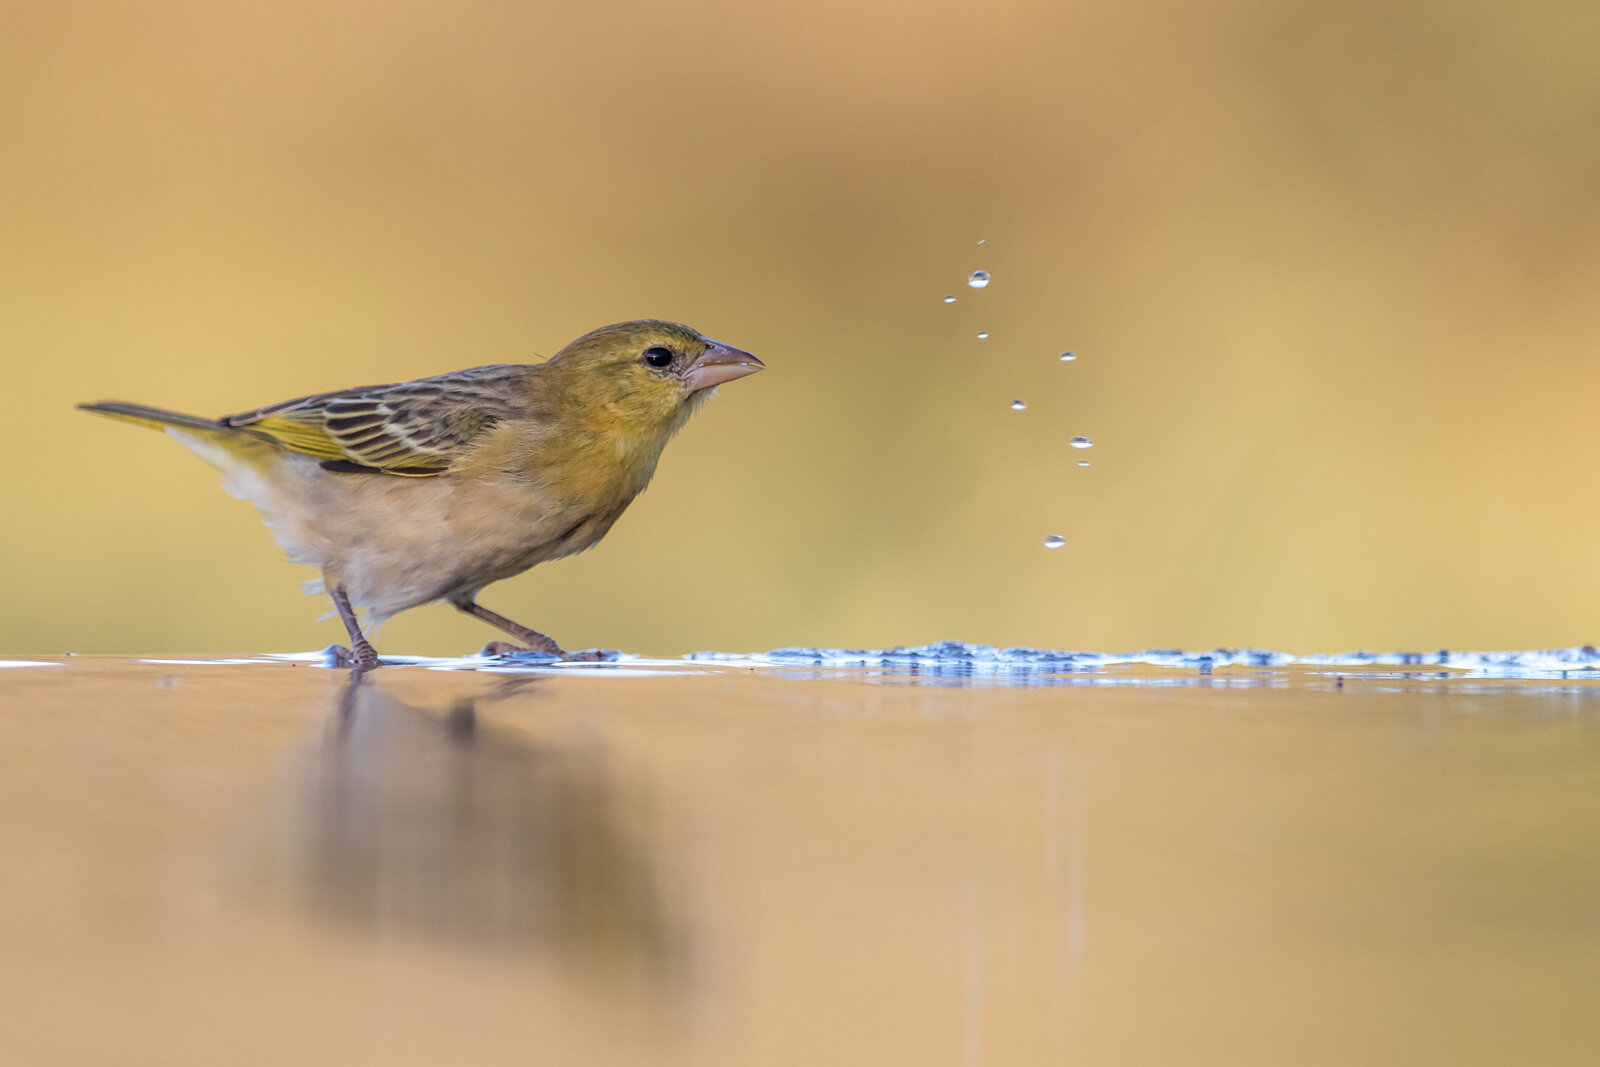 BRIMSTONE CANARY HAVING A DRINK - Nick Lewis (Best print in Class Three)